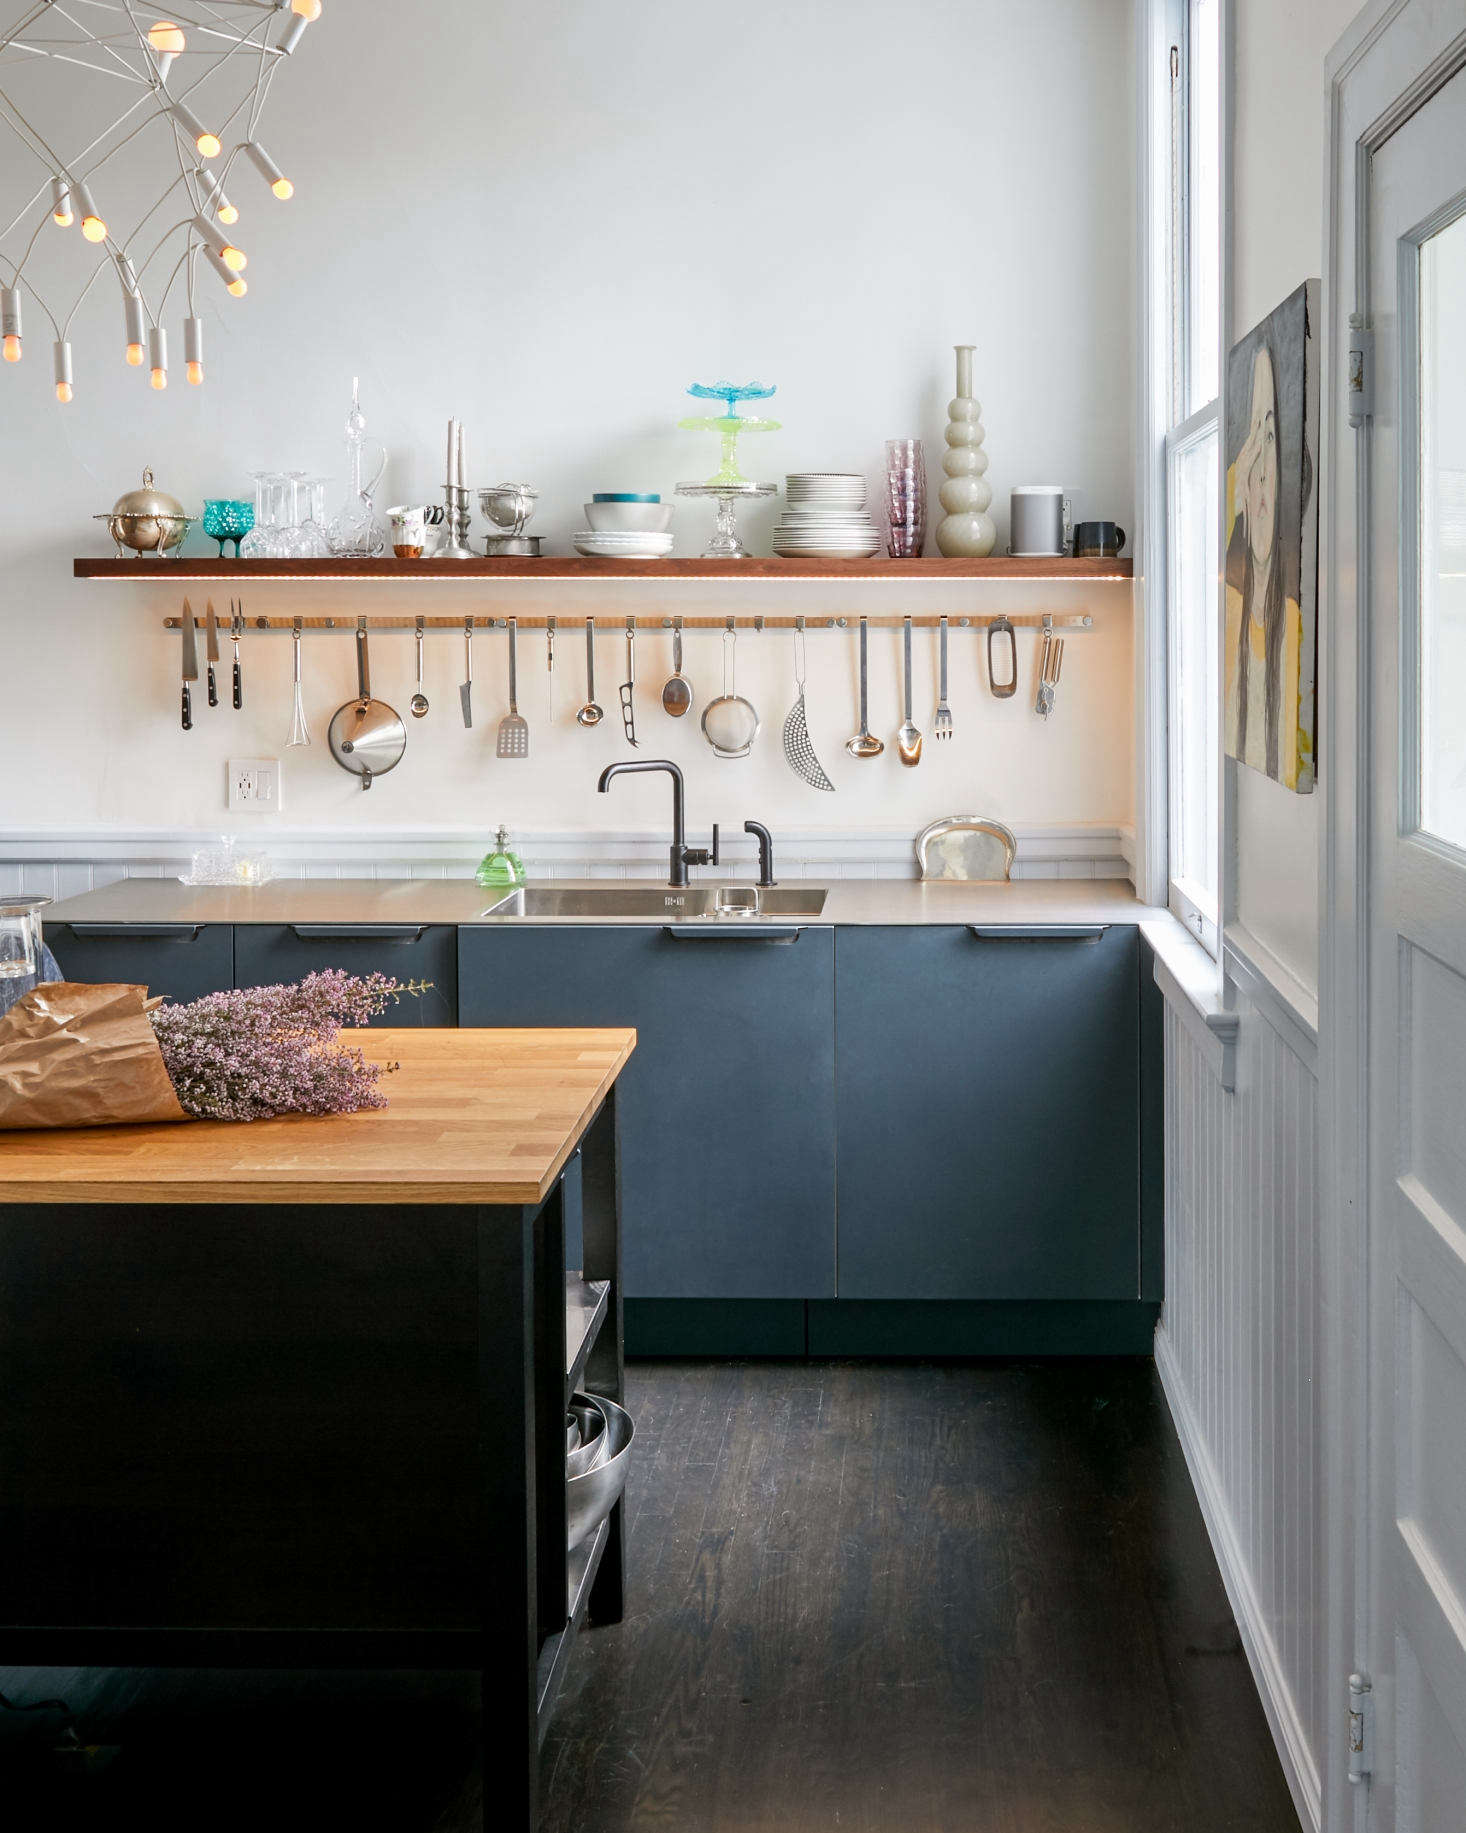 The Orbit Light is from Townsend Design and ships flat. The shelf over the sink is stained walnut with a strip of LED lights underneath. The floor is oak with a dark stain; &#8